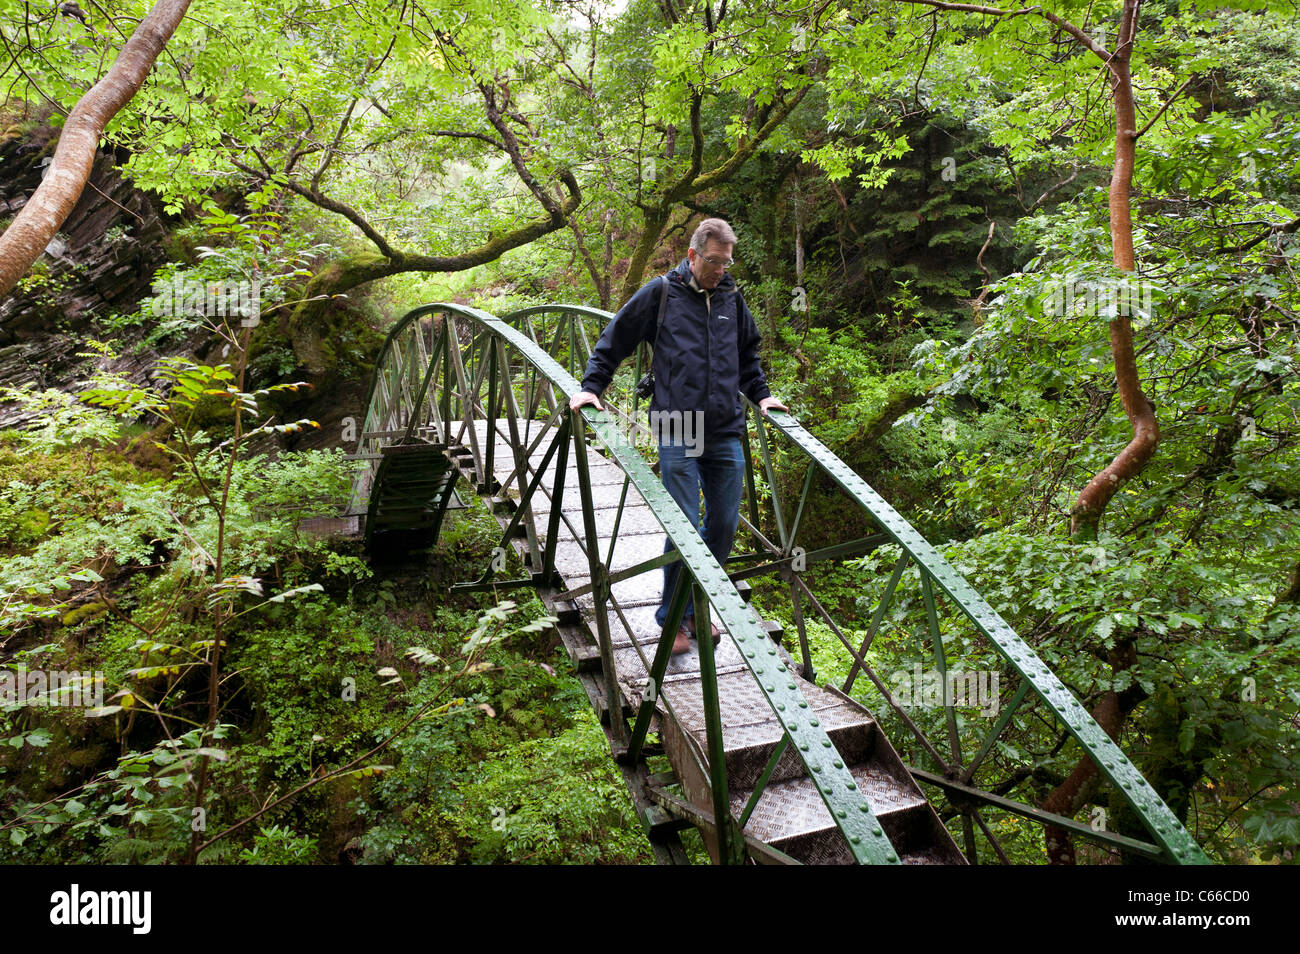 Arched metal bridge at Devils Bridge tourist attraction - inspiration to Wordsworth for 'To the Torrent at Devils - Stock Image